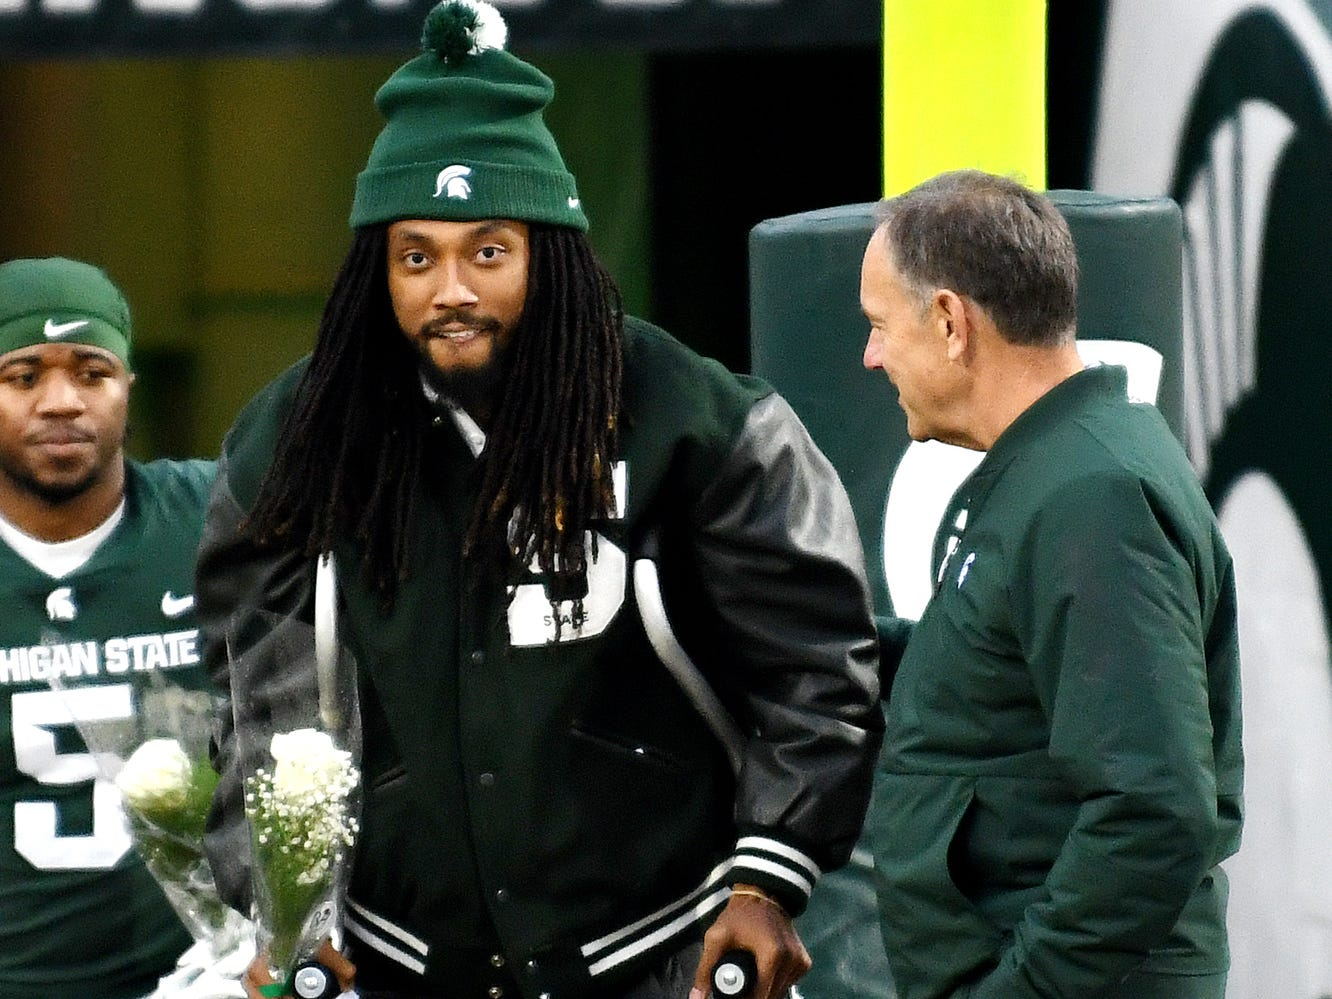 Michigan State senior Felton Davis III, left, stand with head coach Mark Dantonio as Felton is recognized during a ceremony before the game against Rutgers on Saturday, Nov. 24, 2018, at Spartan Stadium in East Lansing.